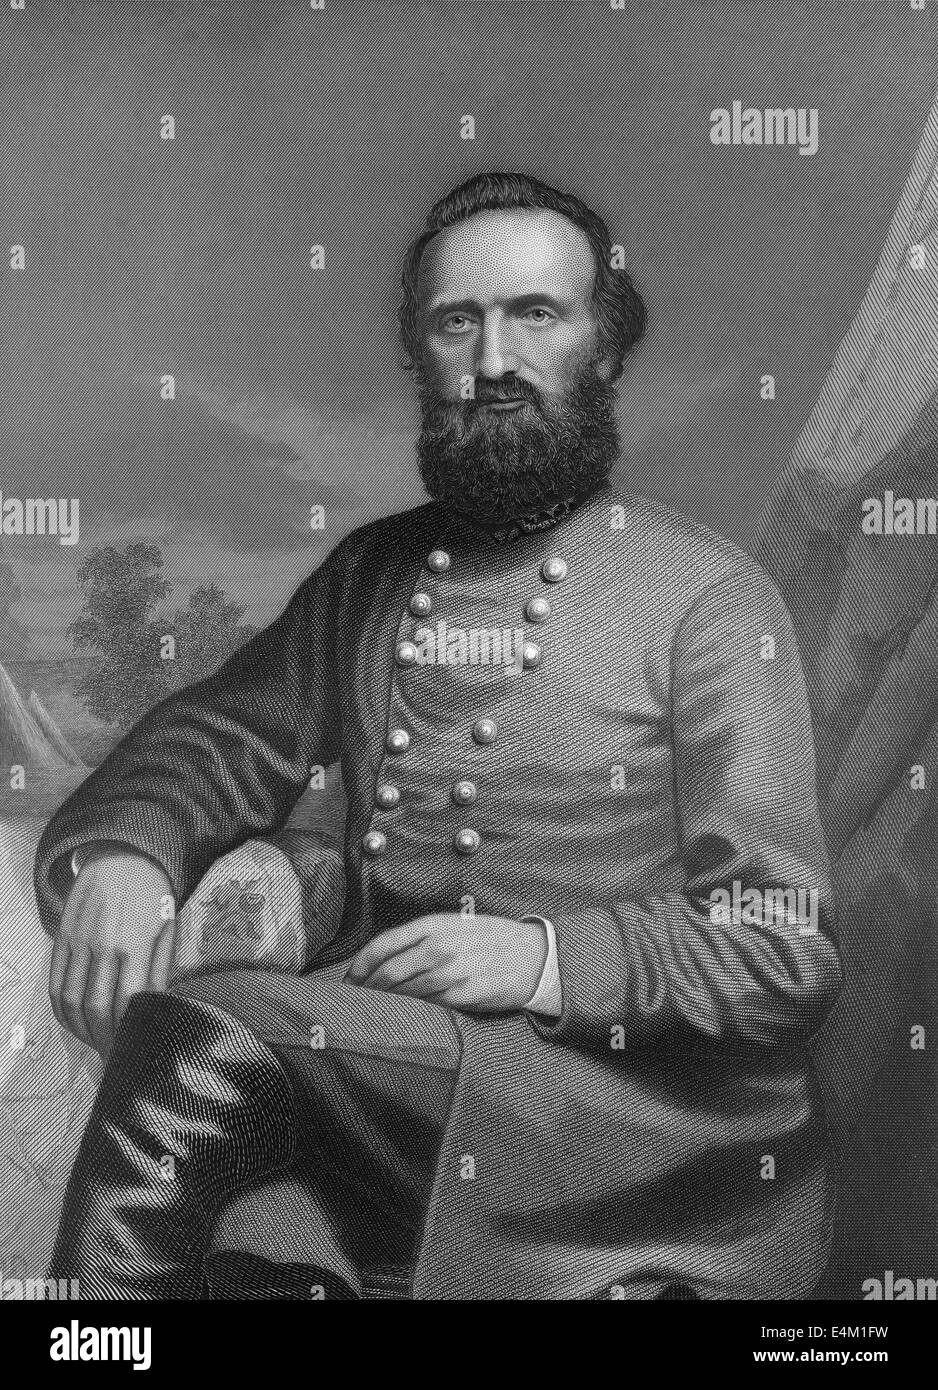 a biography of thomas stonewall jackson a confederate general during the civil war Thomas jonathan jackson, nicknamed stonewall, was a top general in the confederate army during the united states civil war before the war started, jackson was a professor at the virginia military.